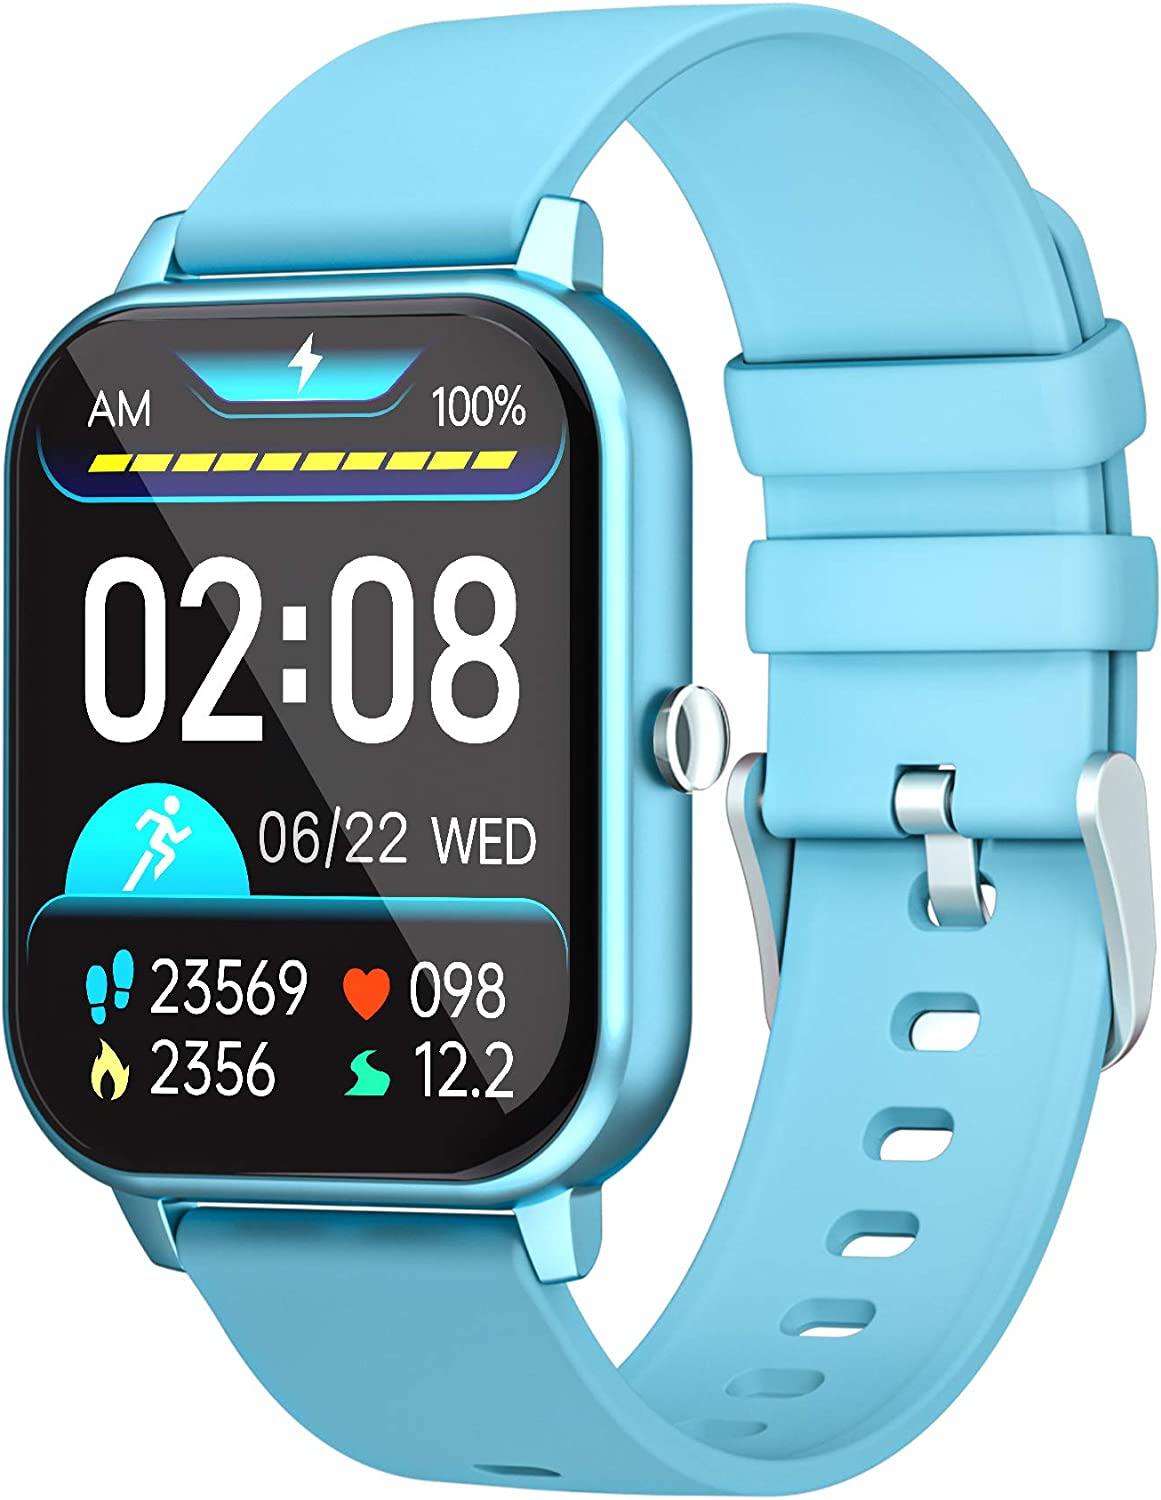 GJT 1.69'' Smart Watch, Calls and Message Notifications, LCD Fitness Tracker Watch for iPhone Samsung Android Smartphone, 8 Sport Modes, Support Heart Rate SPO² Blood Pressure Sleep Monitor (Blue)